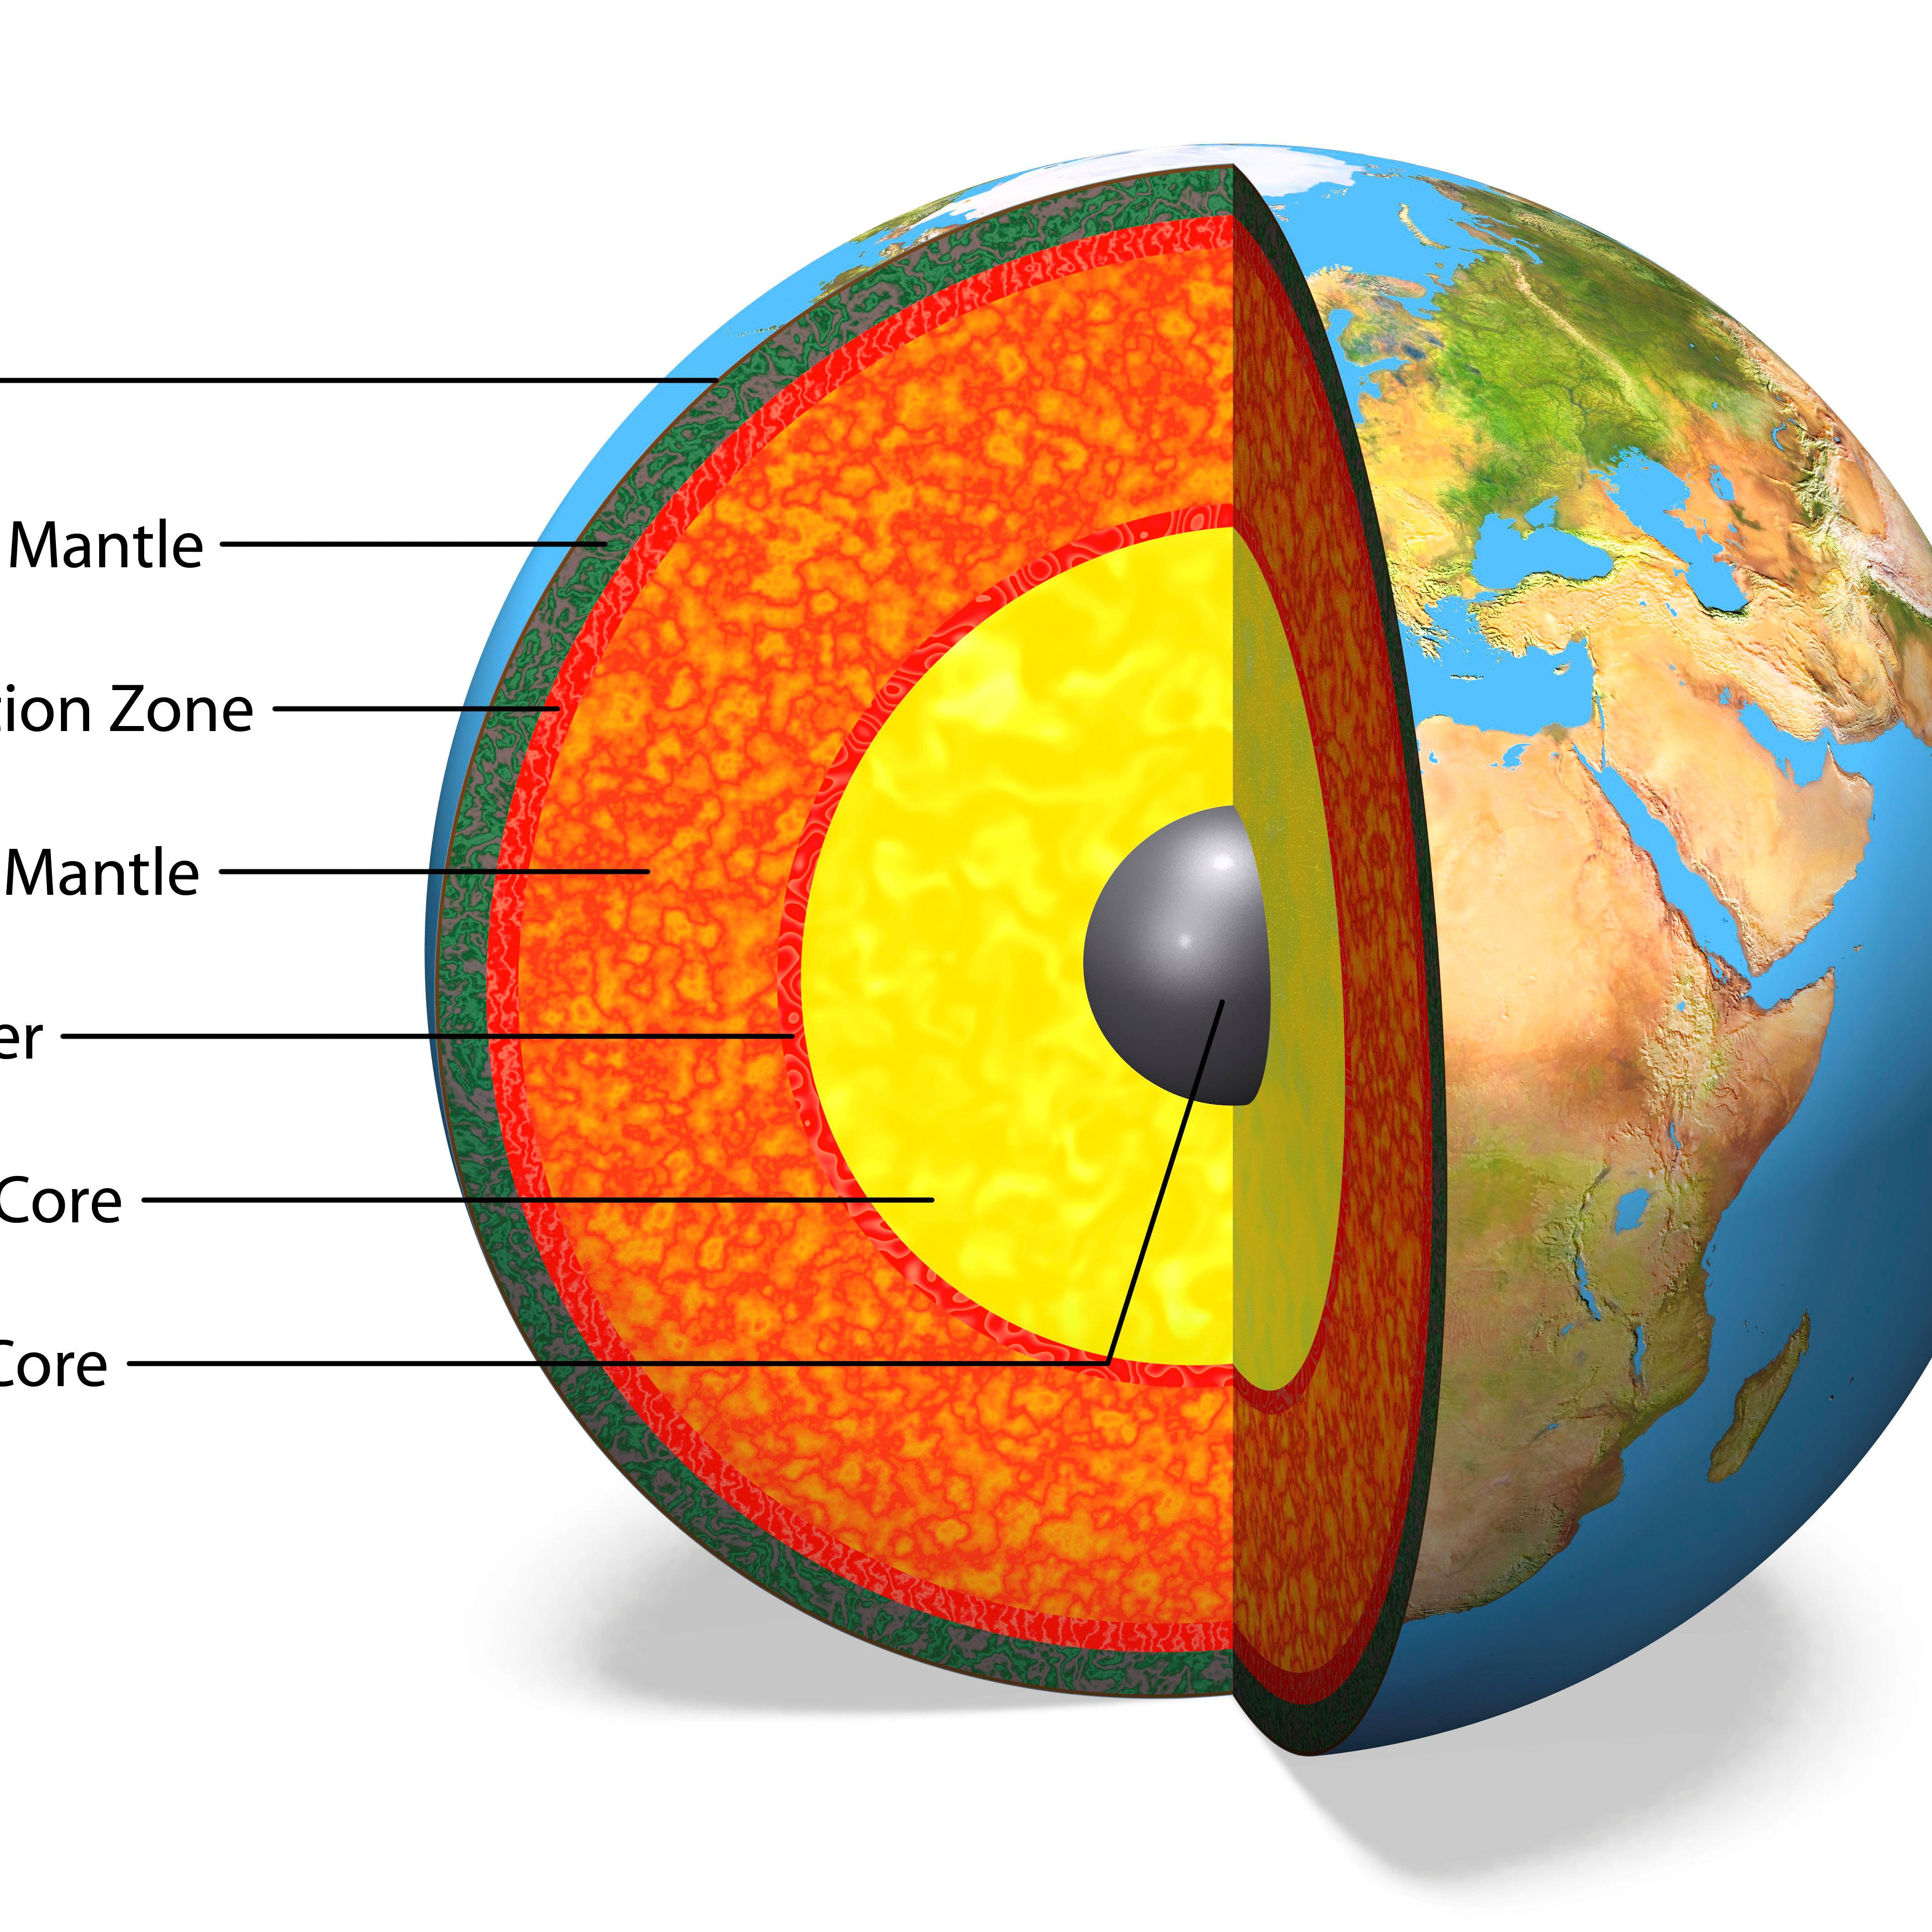 33 Diagram Of Earths Layers